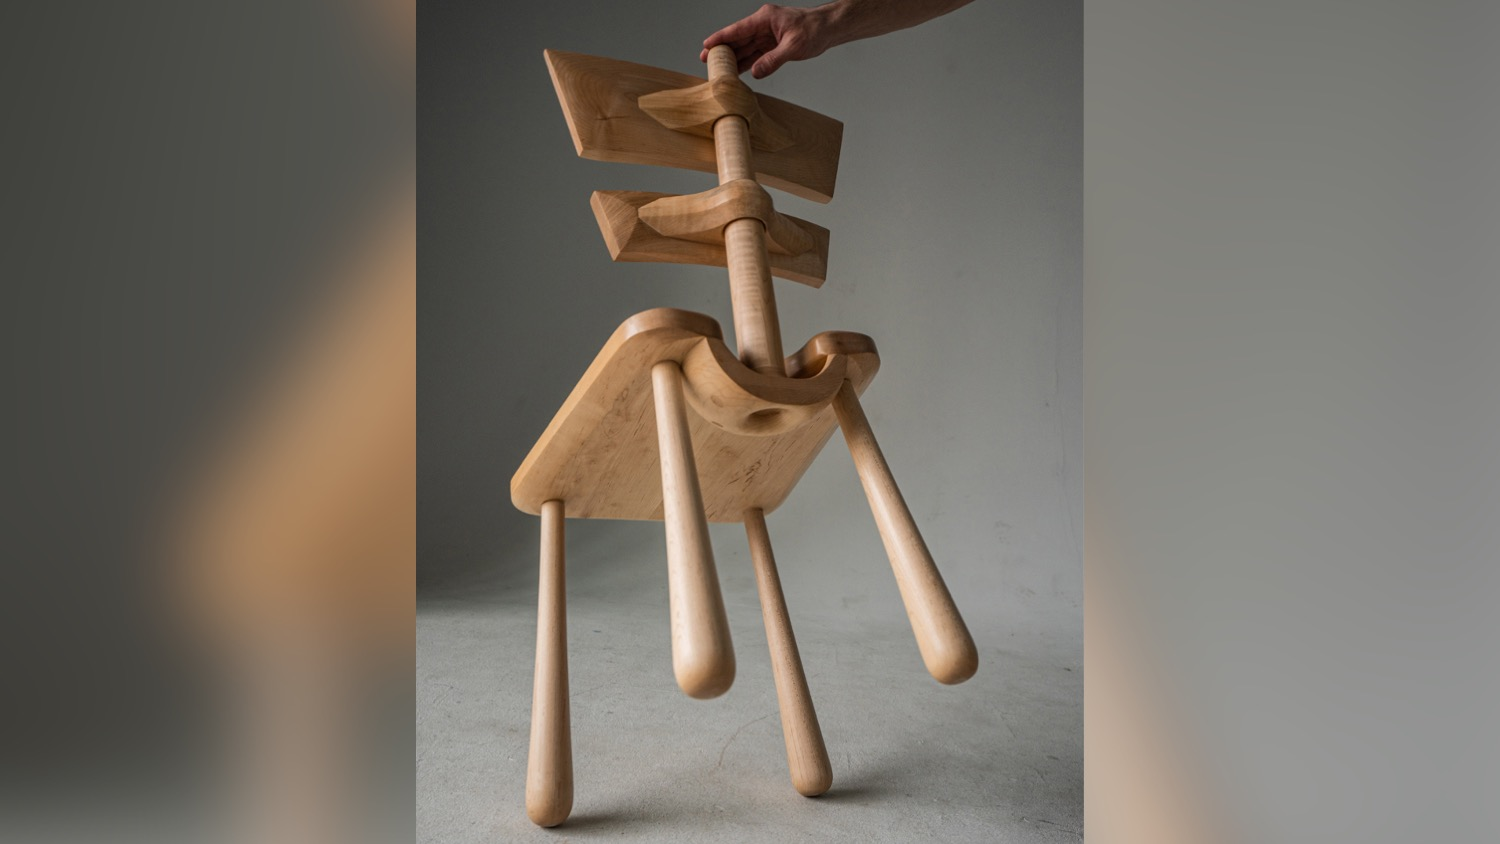 A finely crafted chair is held on two legs.